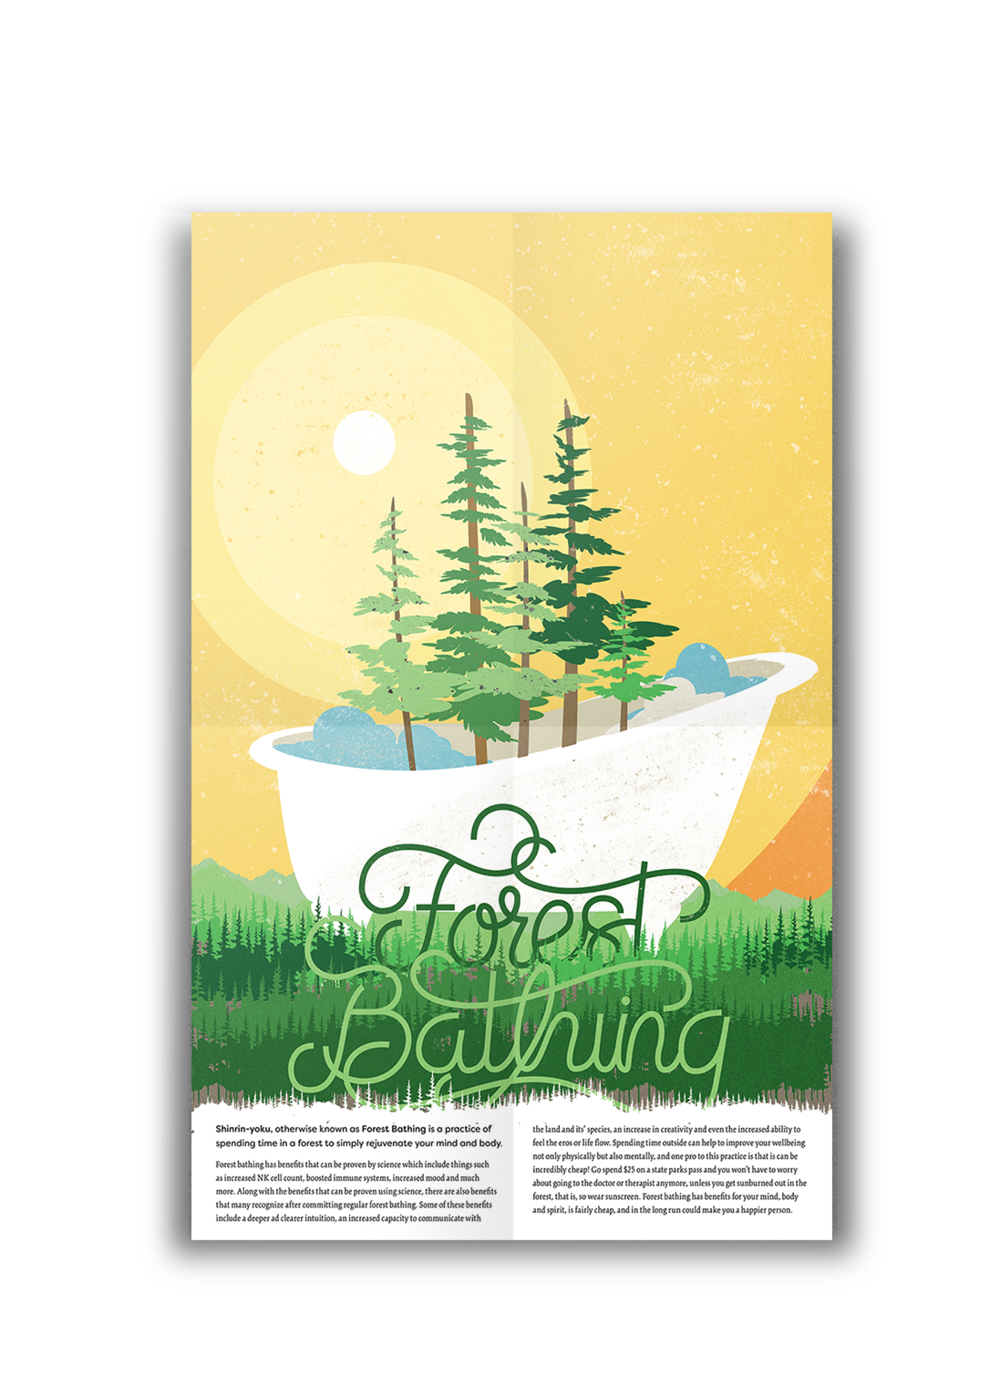 Forest Bathing - Tabloid sized poster created for the inside of a Zine which detailed the positive affects of forest bathing.